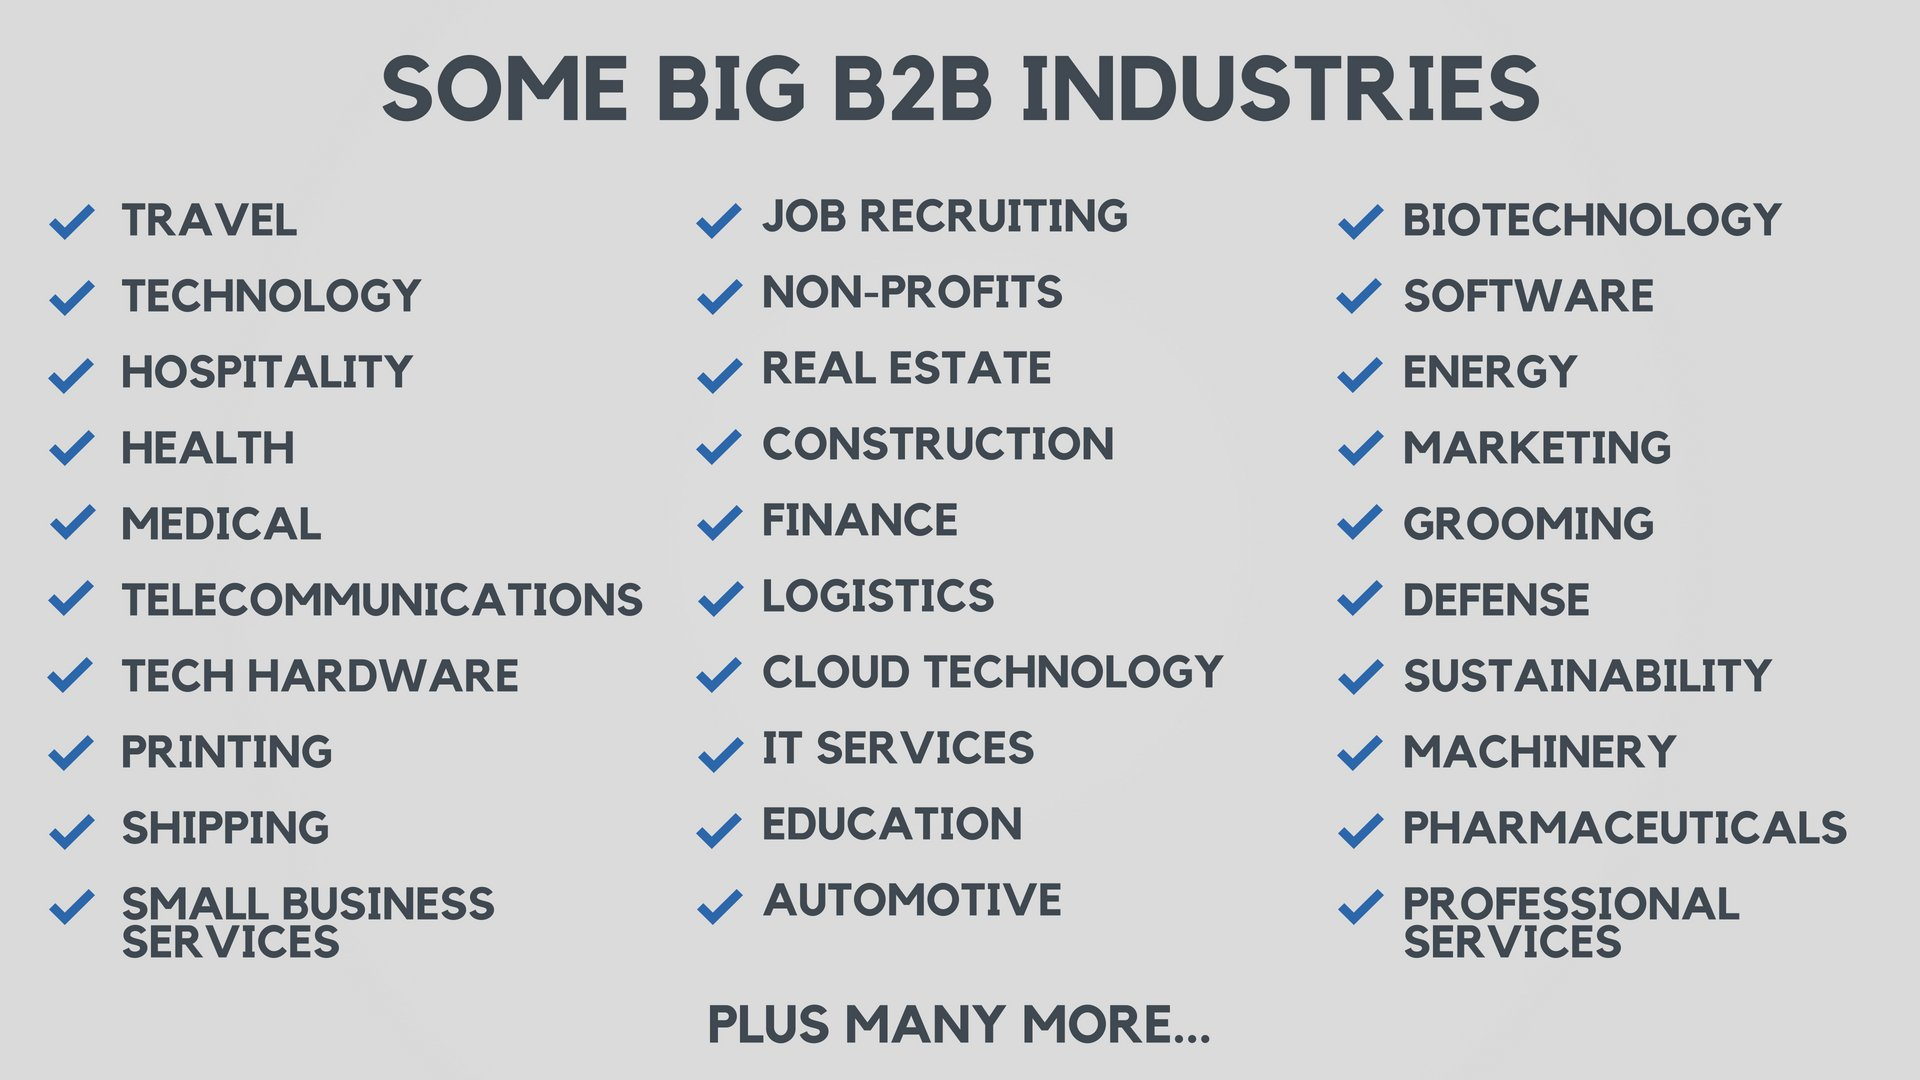 b2b industries